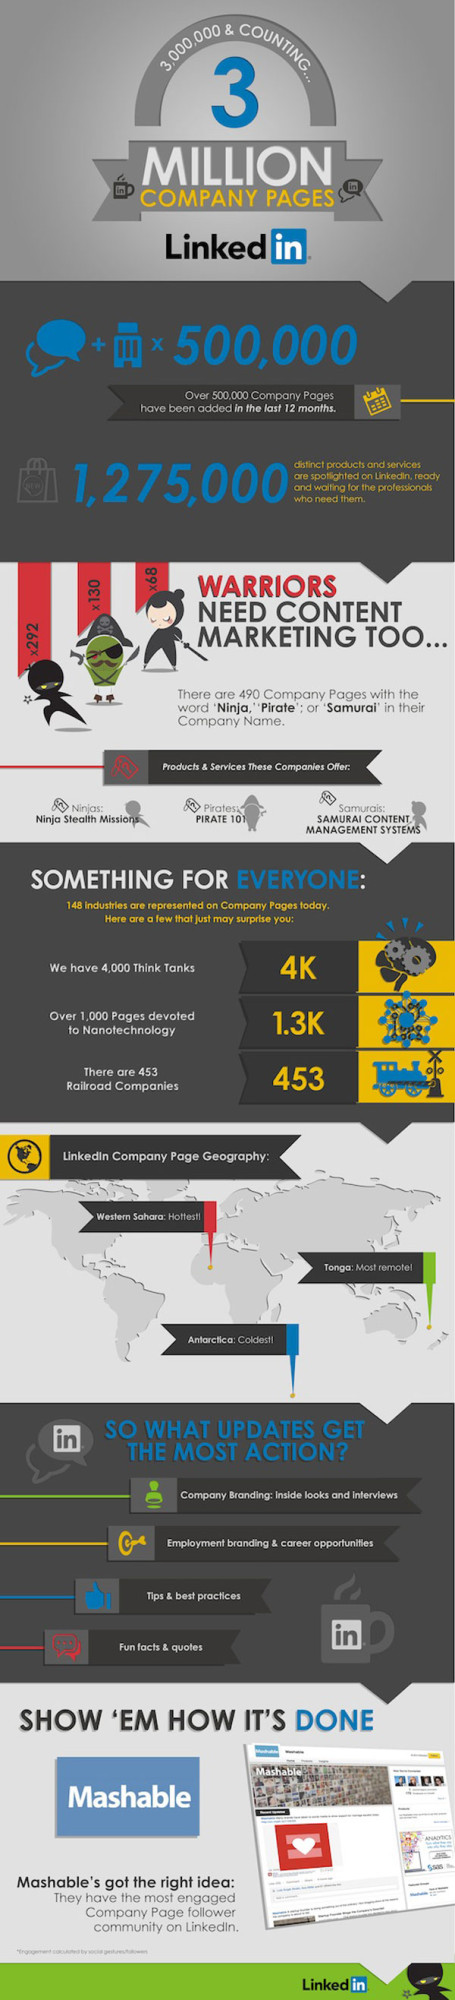 linkedin-infographic-3mpages-455x2000